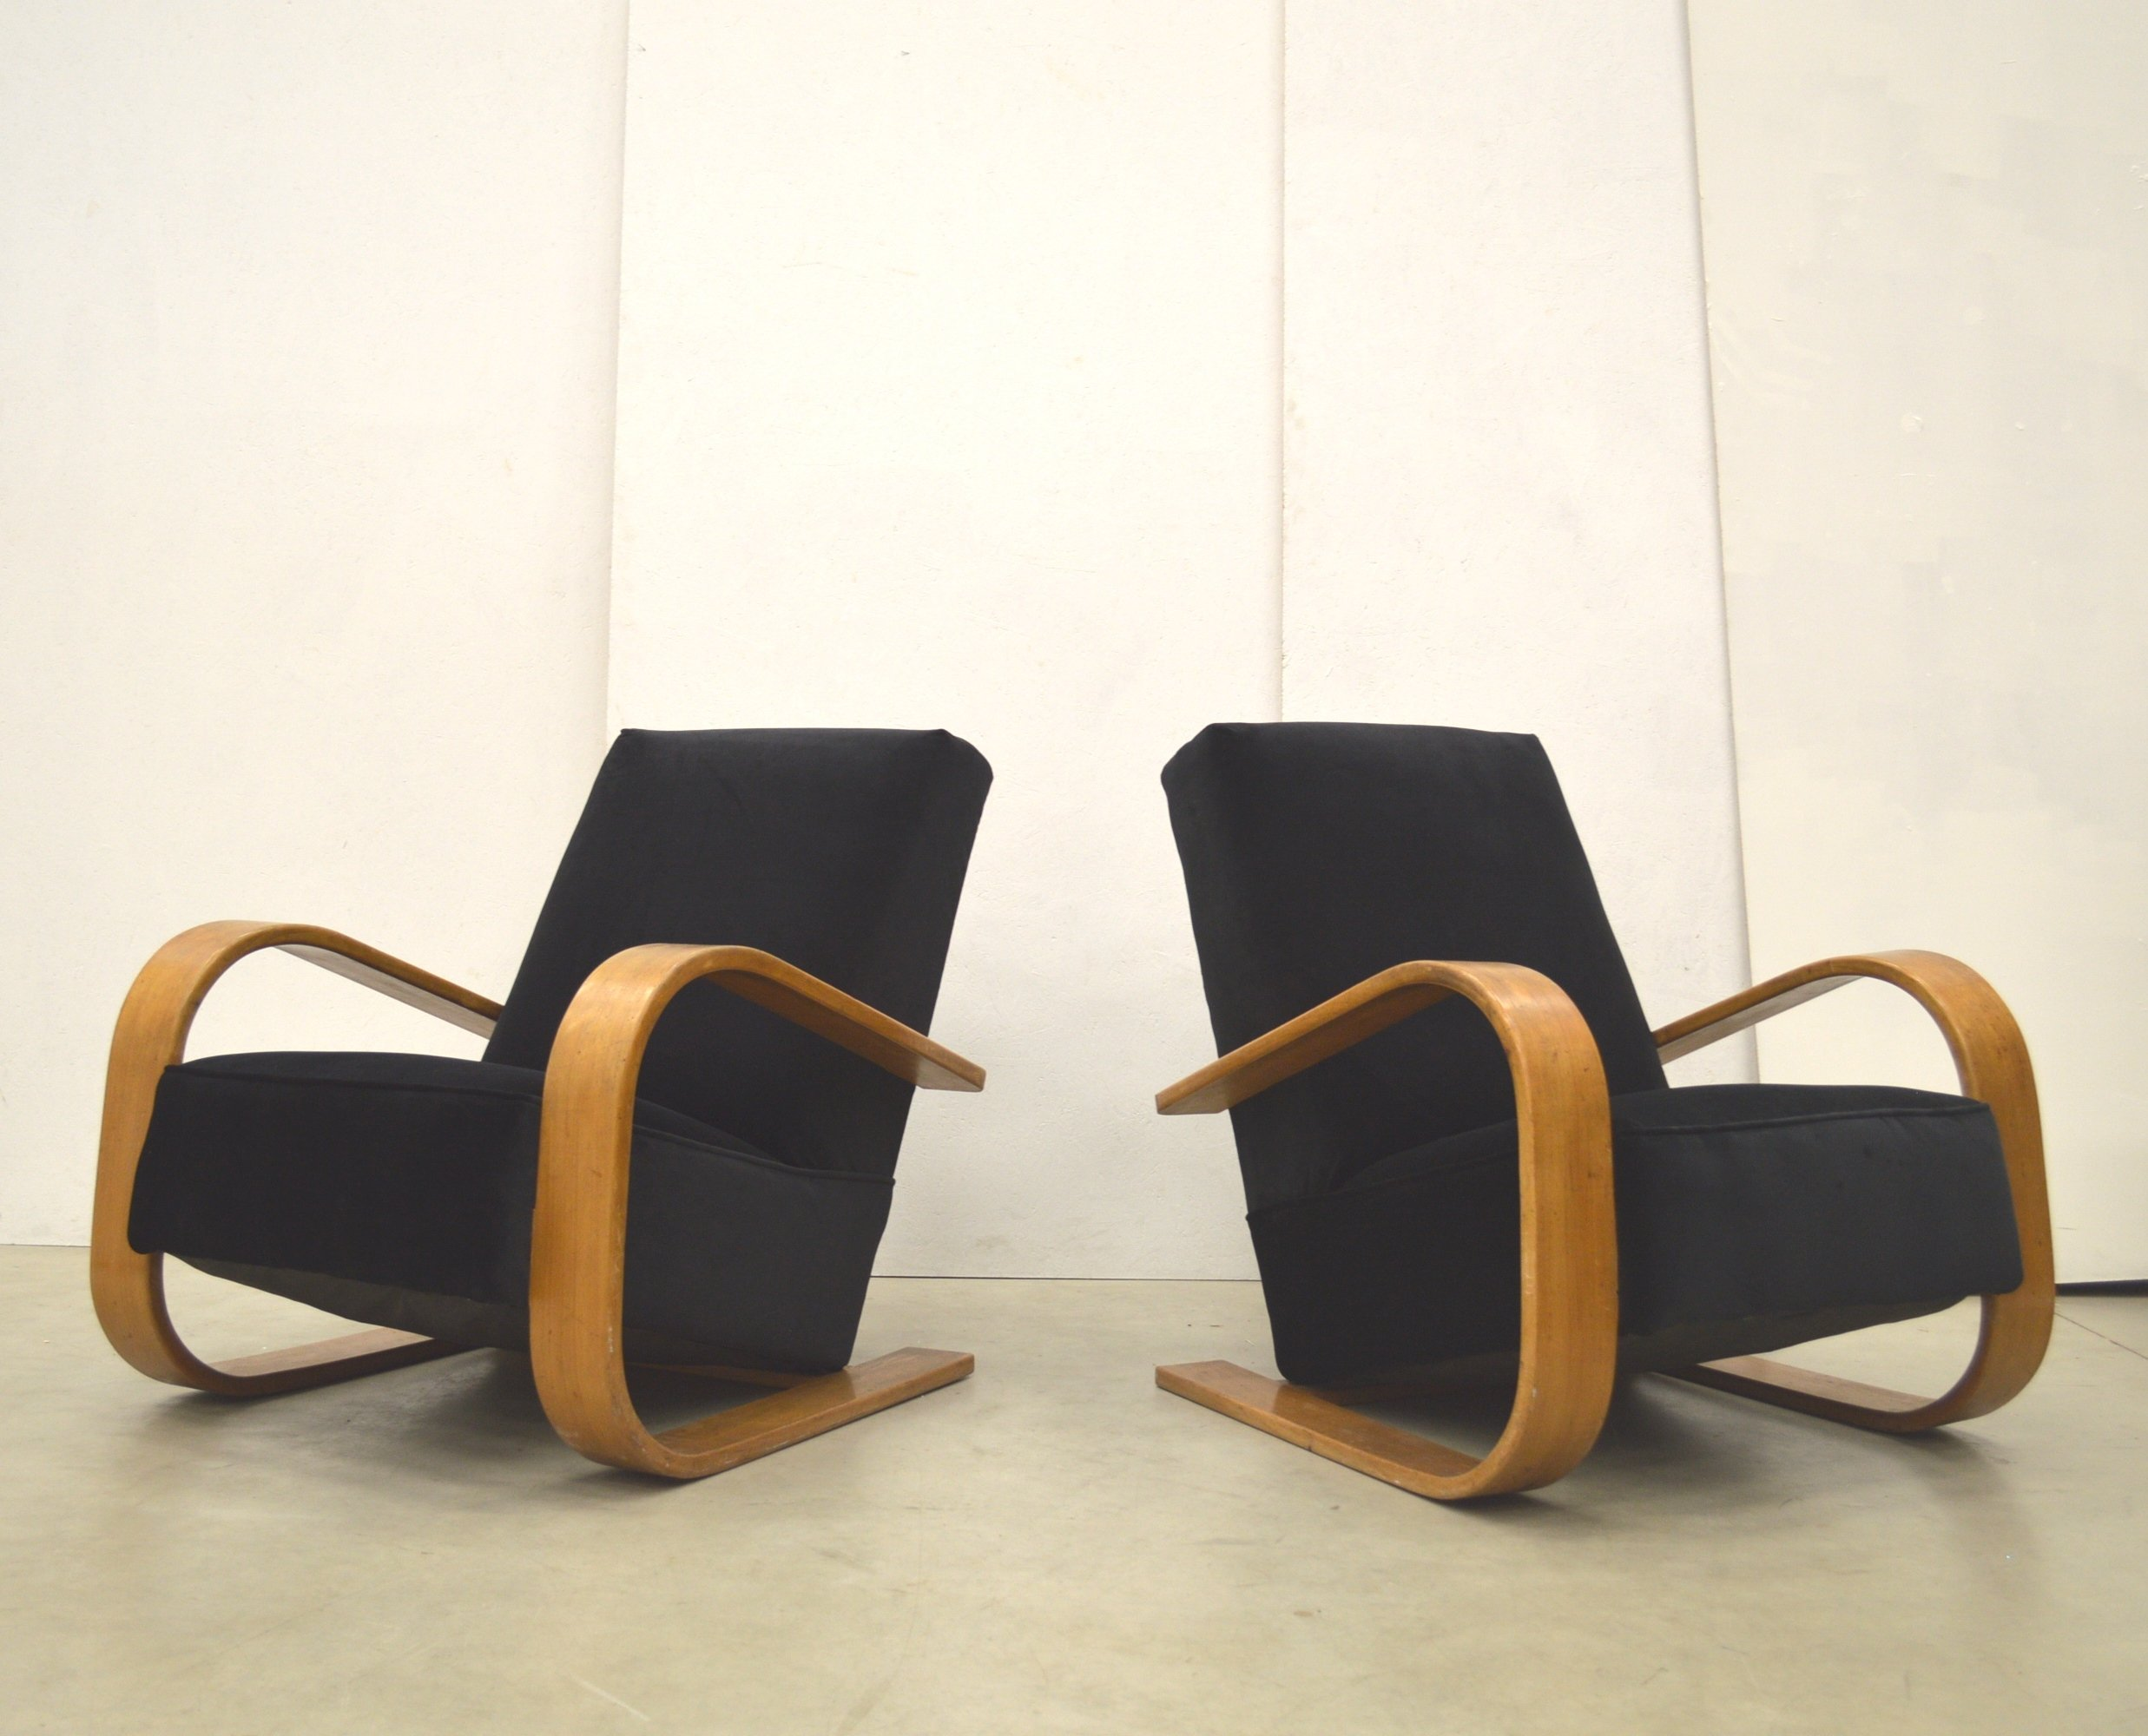 Finnish Art Dco Tank Chairs from the early 30s 78377